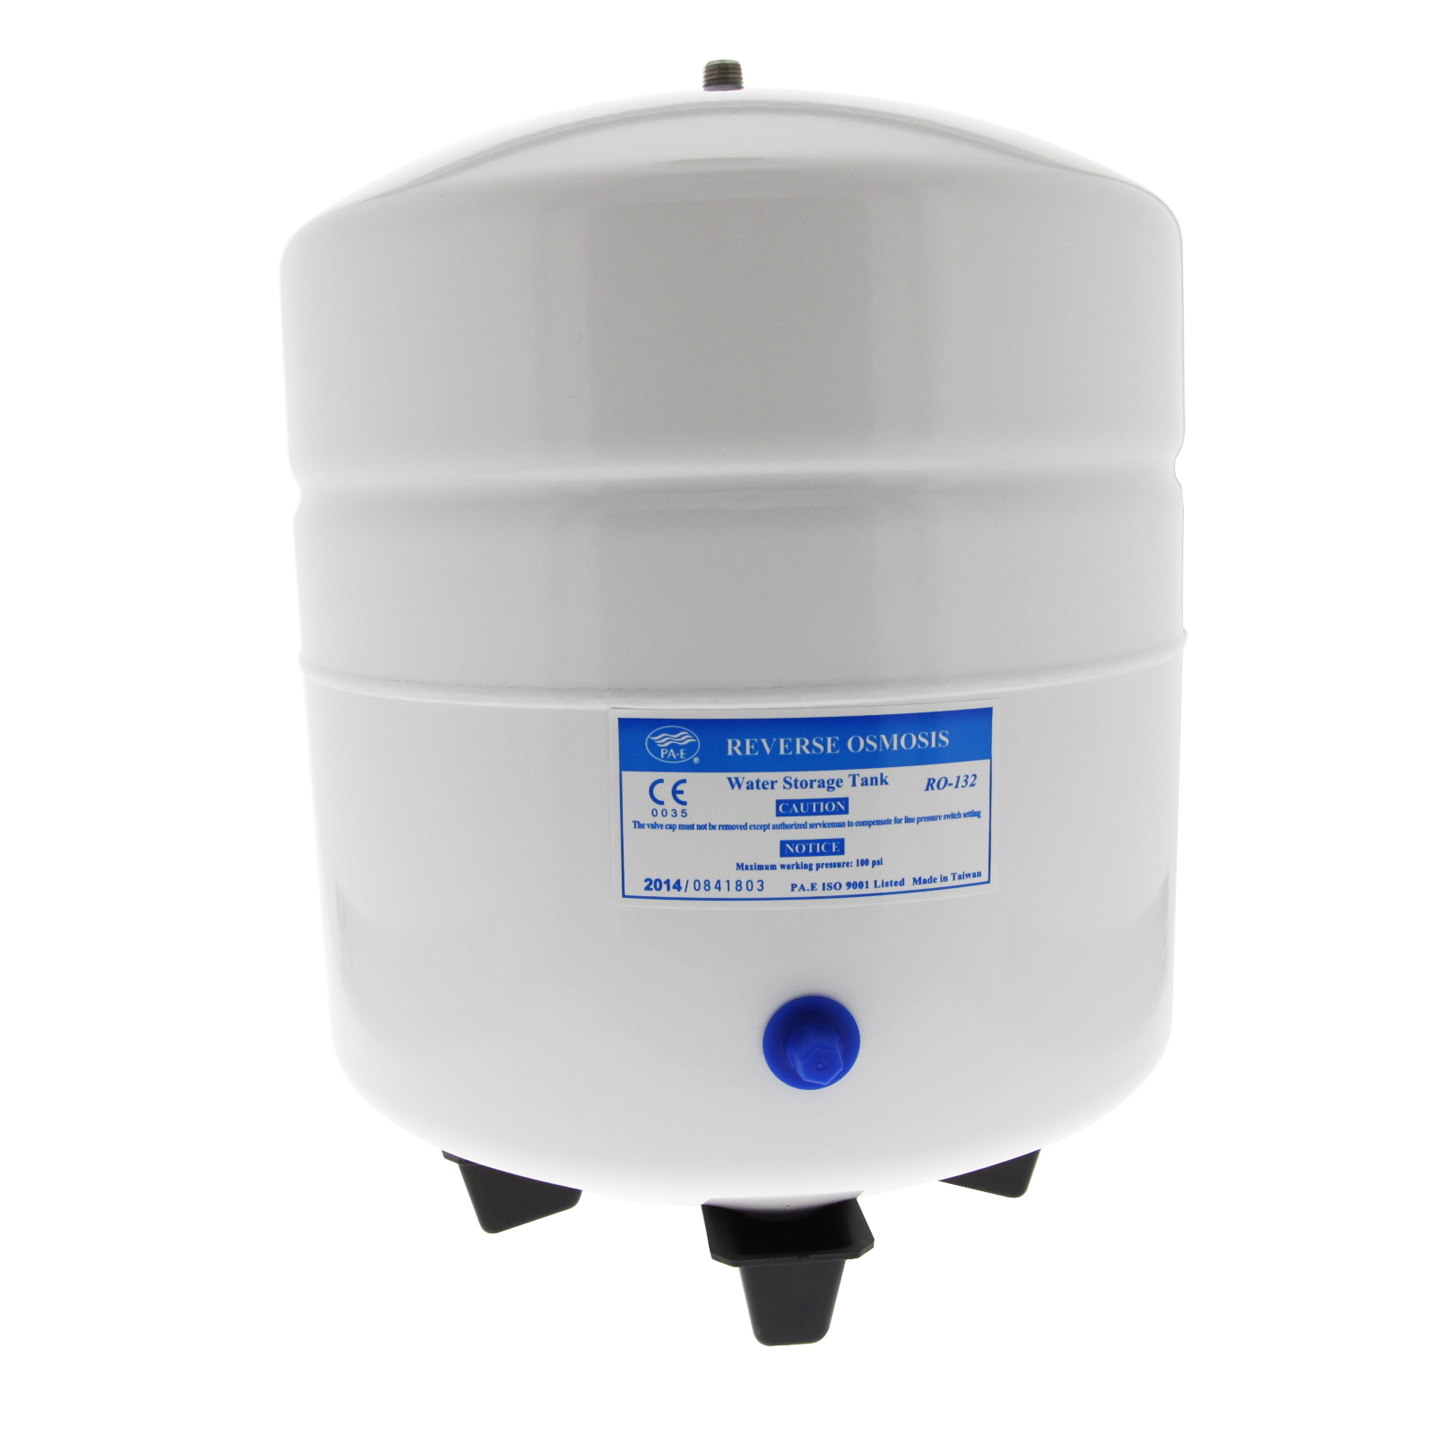 RO-132-W14 White 3.2 Gallon Reverse Osmosis System Bladder Tank by Tier1